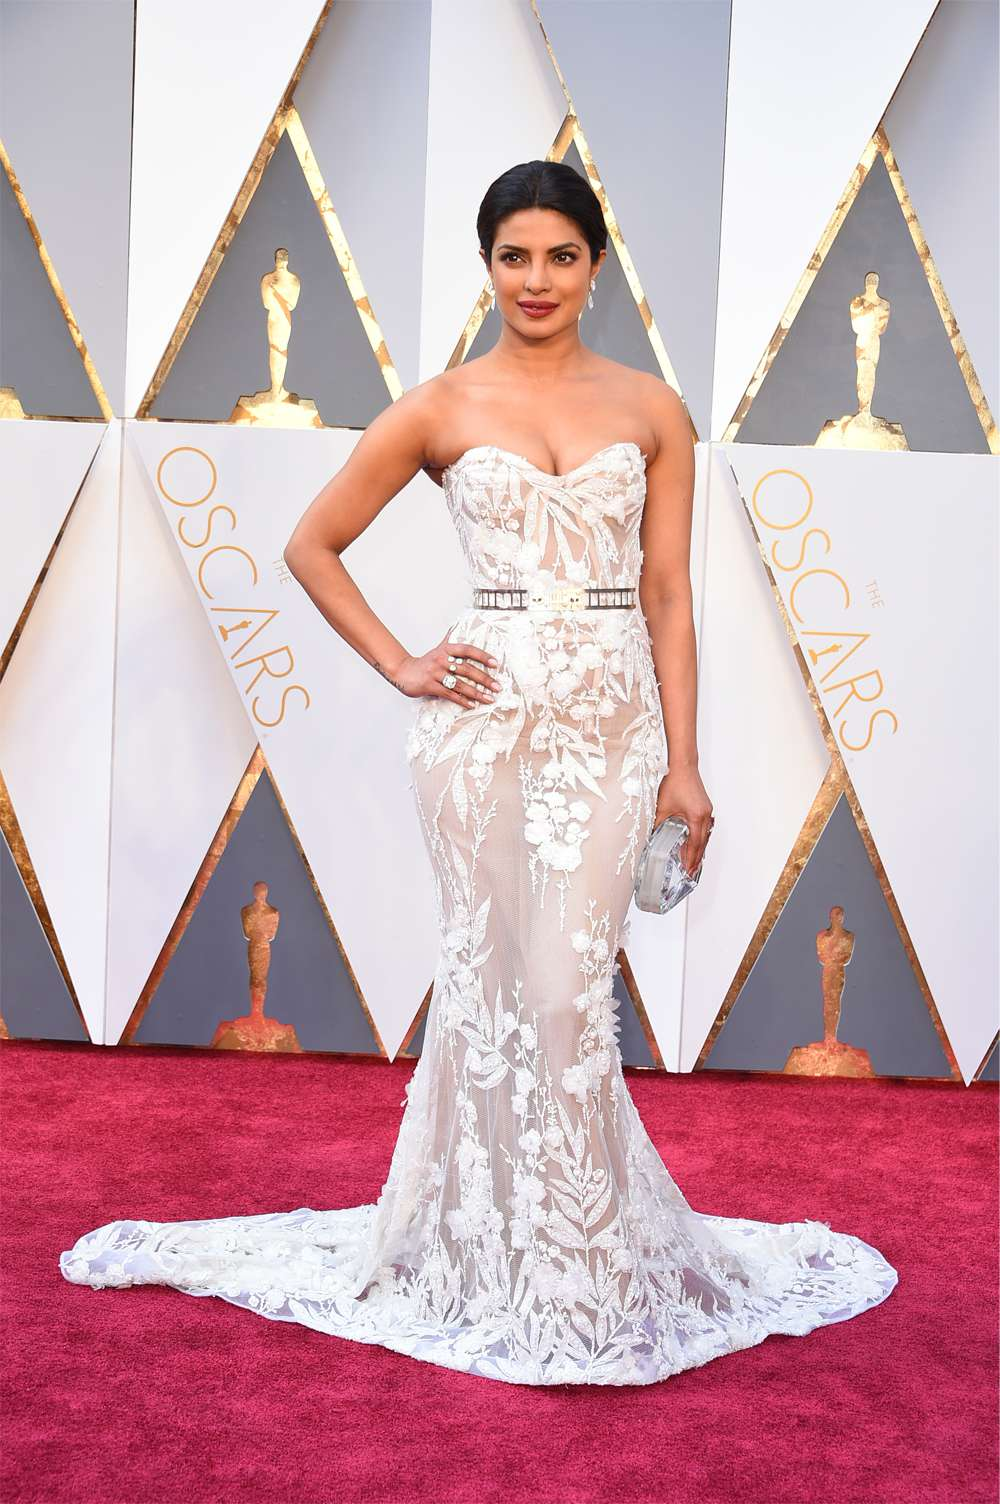 Priyanka Chopra in a sheer Zuhair Murad gown before co-presenting the Oscar for editing.